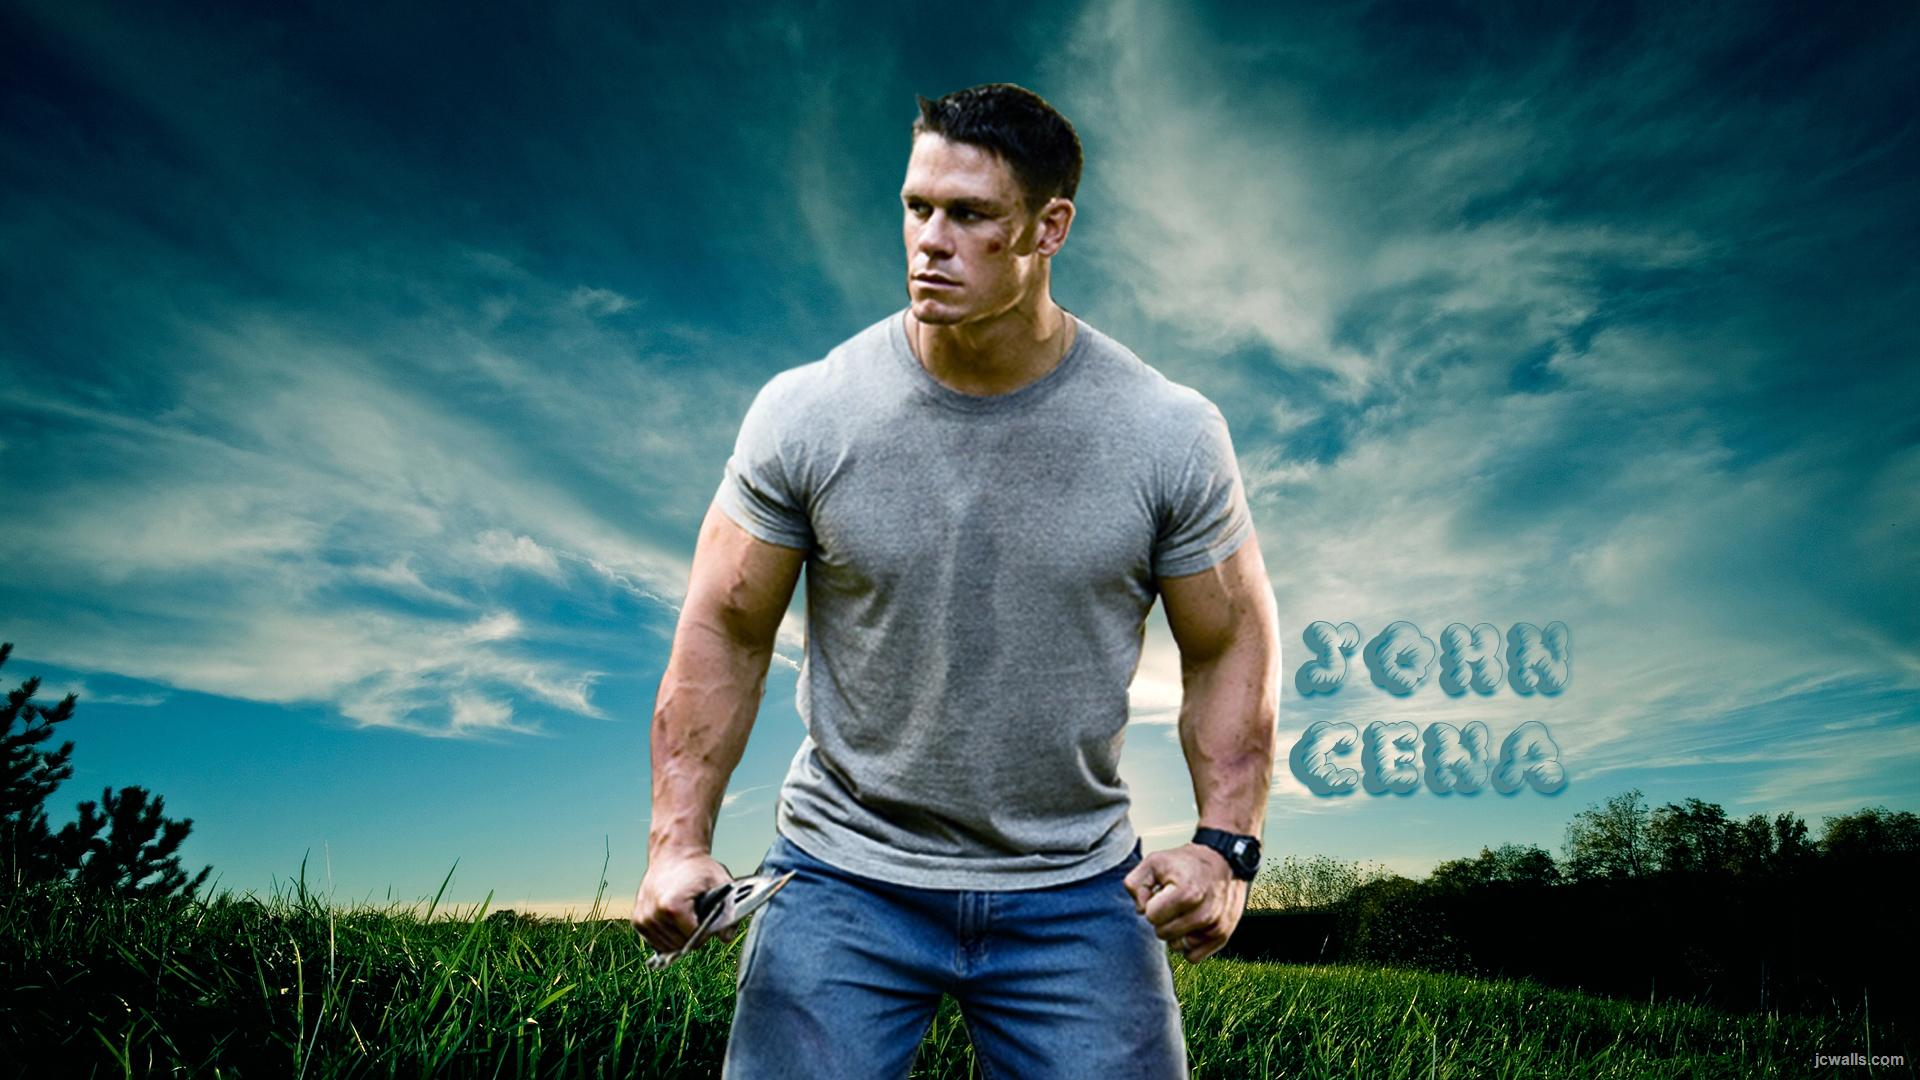 HD Wallpapers John Cena